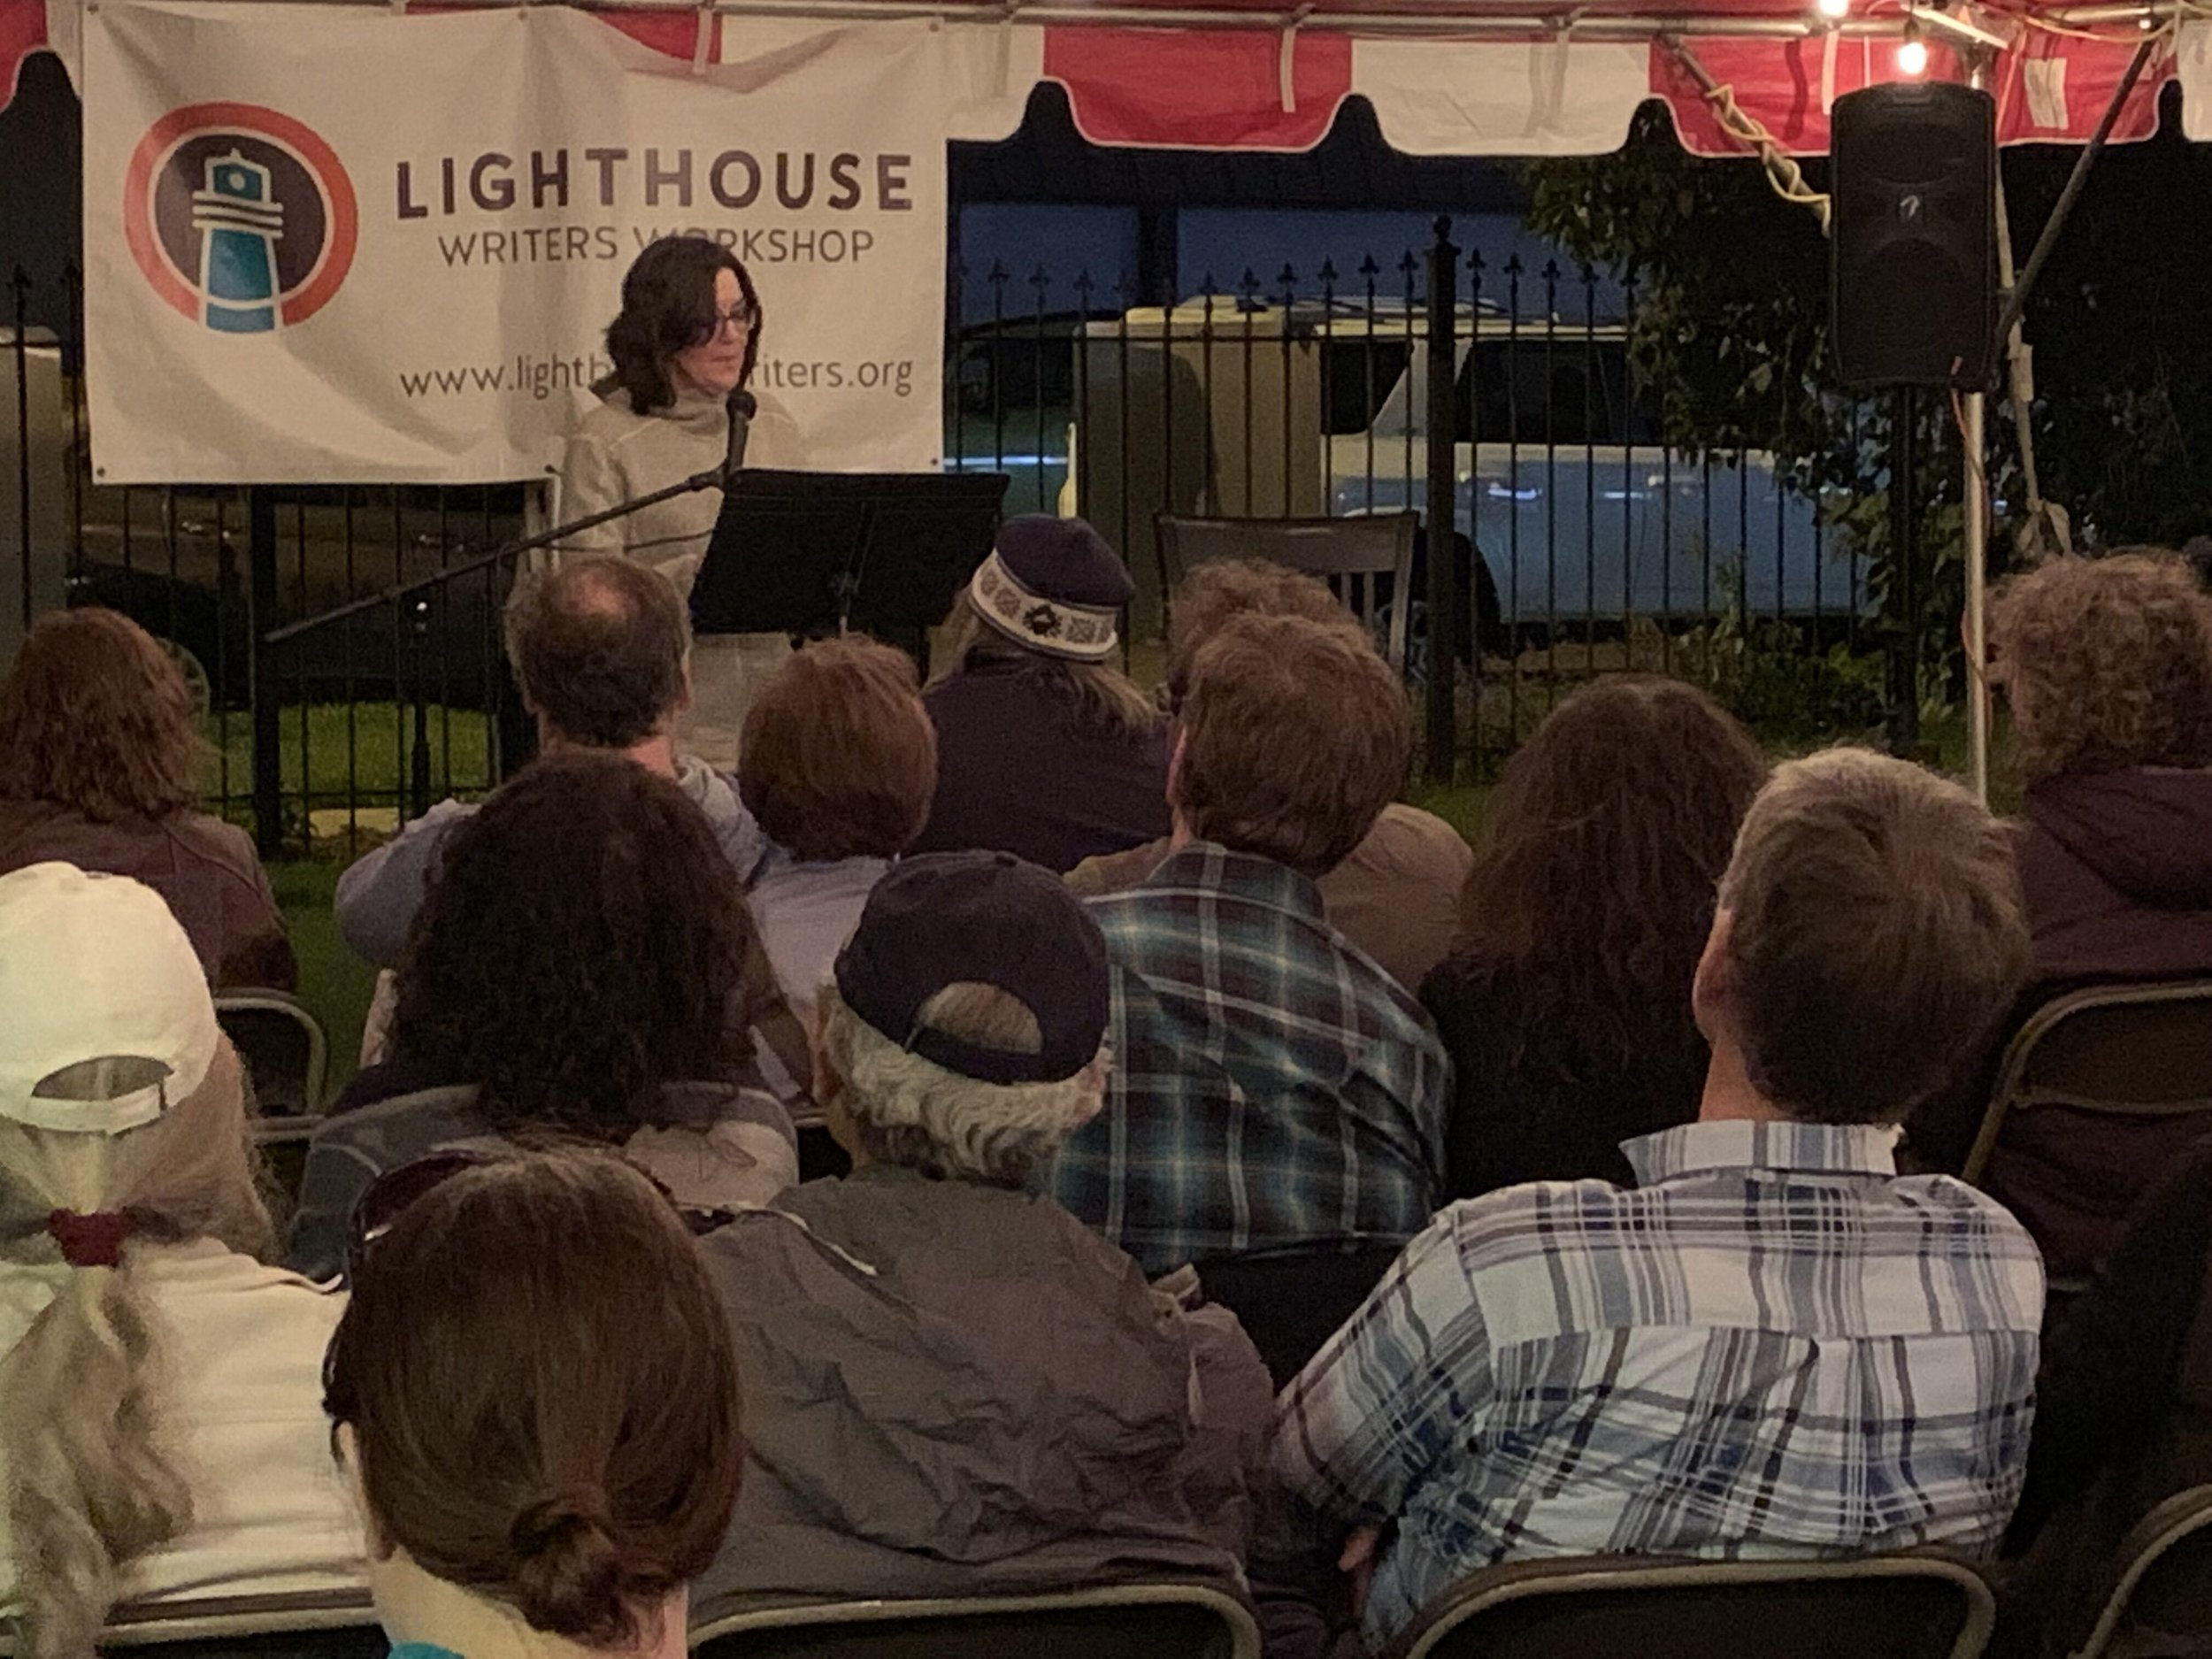 6/11 Reading at Lighthouse Writers Workshop Lit Fest. Under the tent!